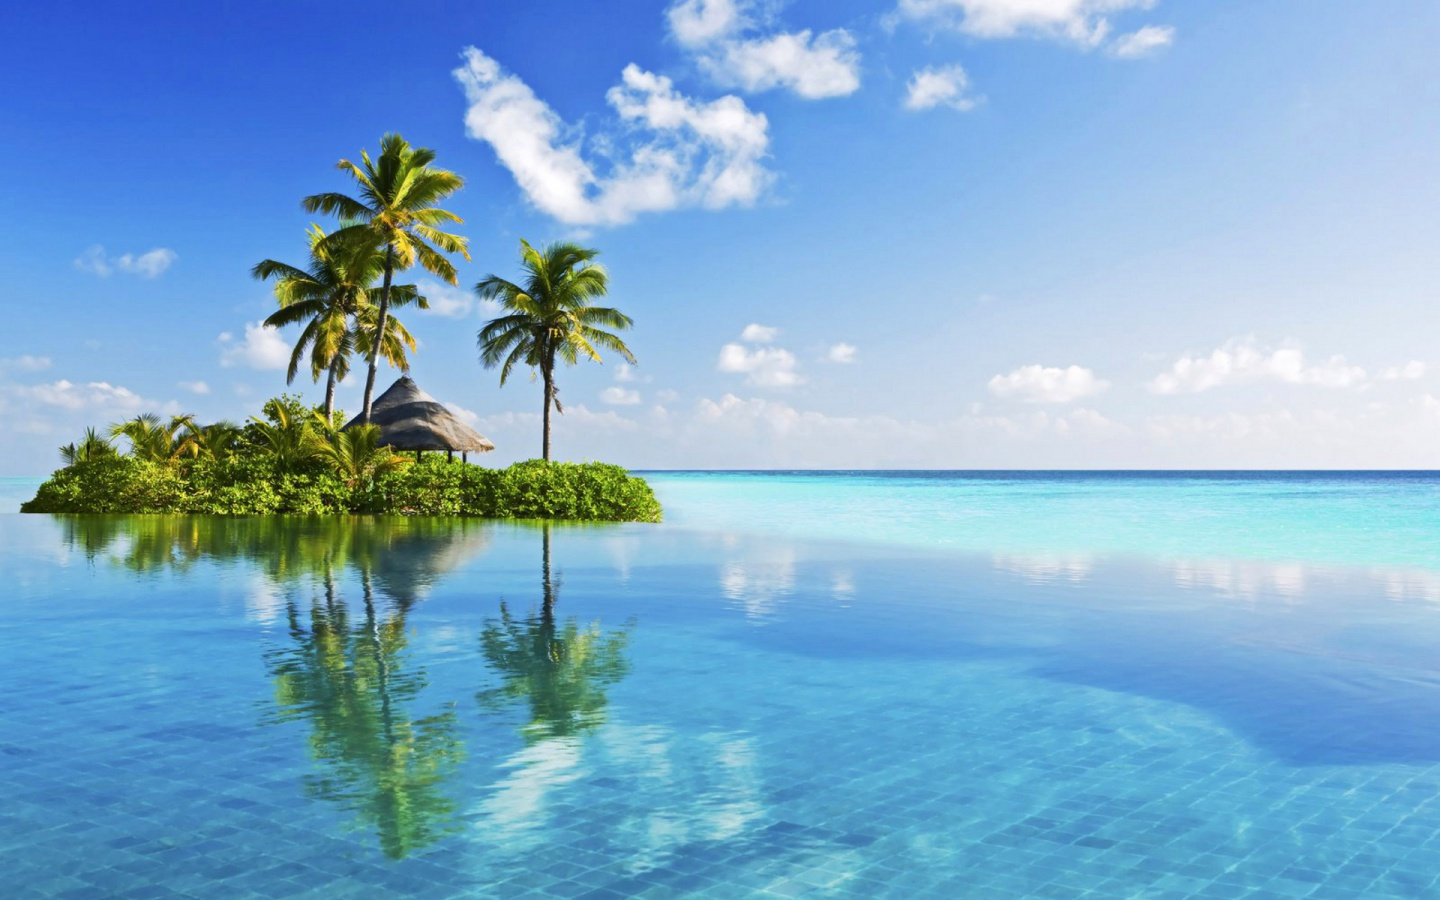 Hd Tropical Island Beach Paradise Wallpapers And Backgrounds: 1440x900 Little Tropical Island In Blue Desktop PC And Mac